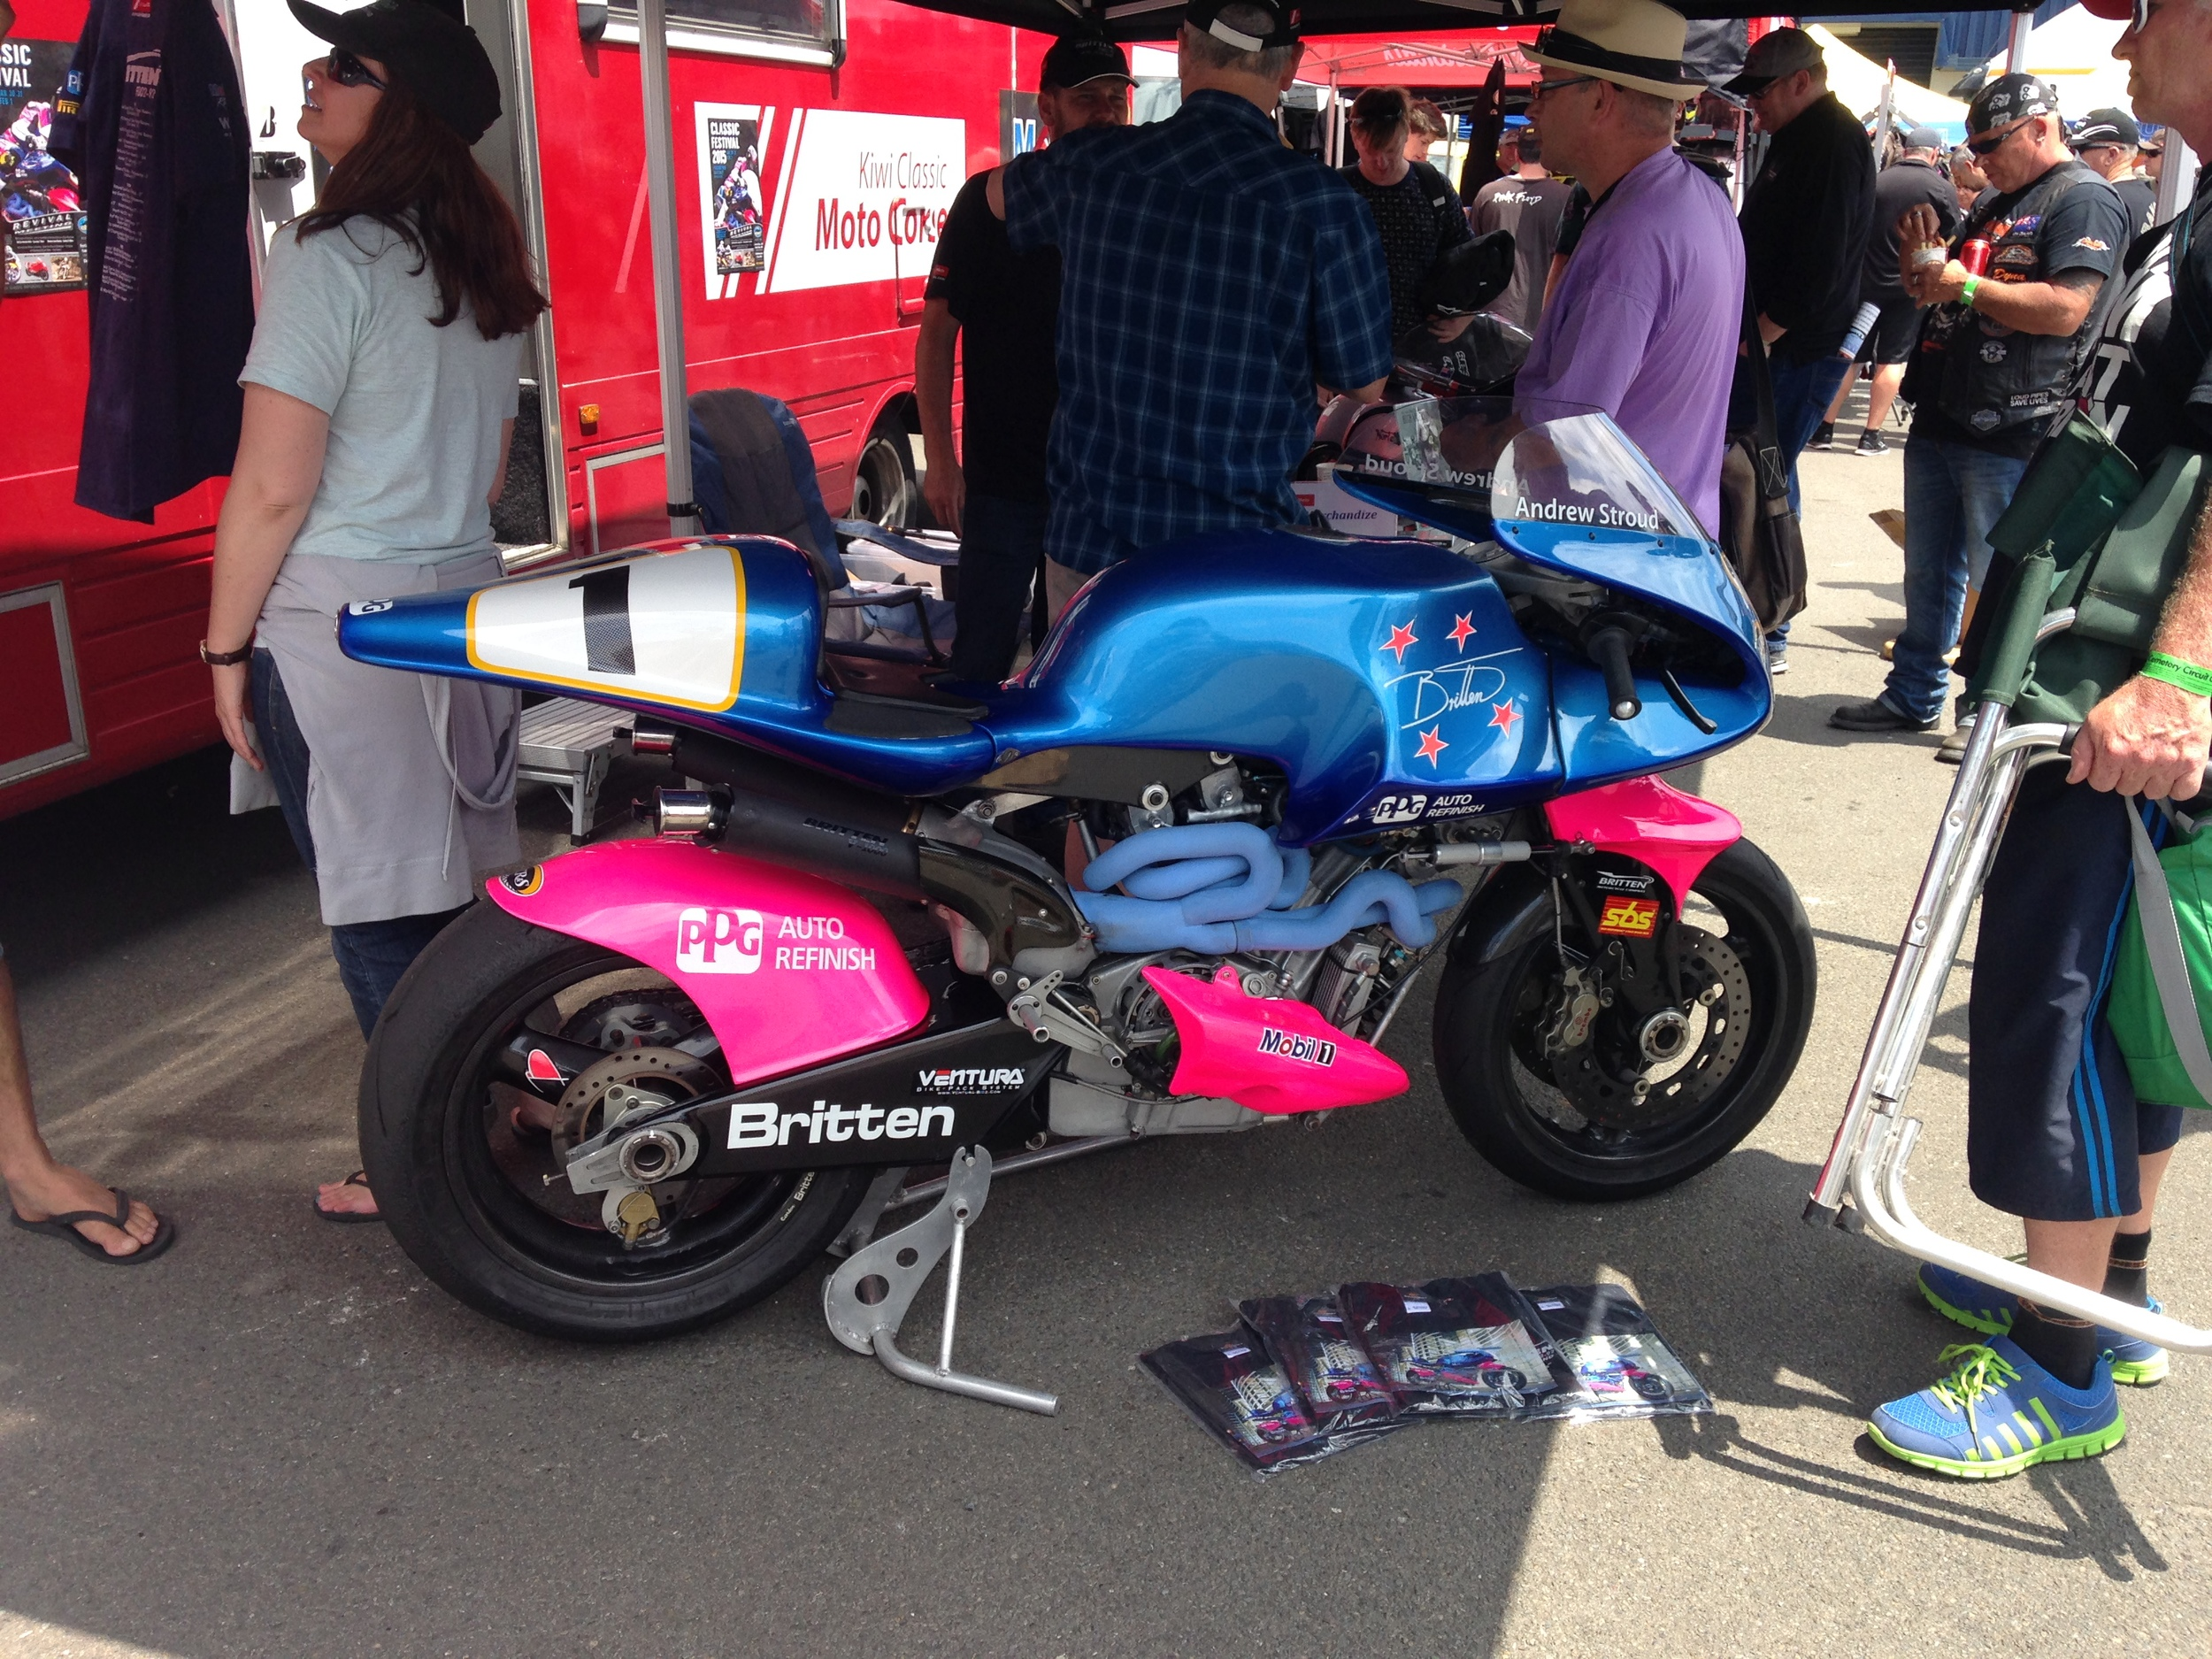 The beautiful Britten Motorbike- which Guy said was a 'magic carpet ride'